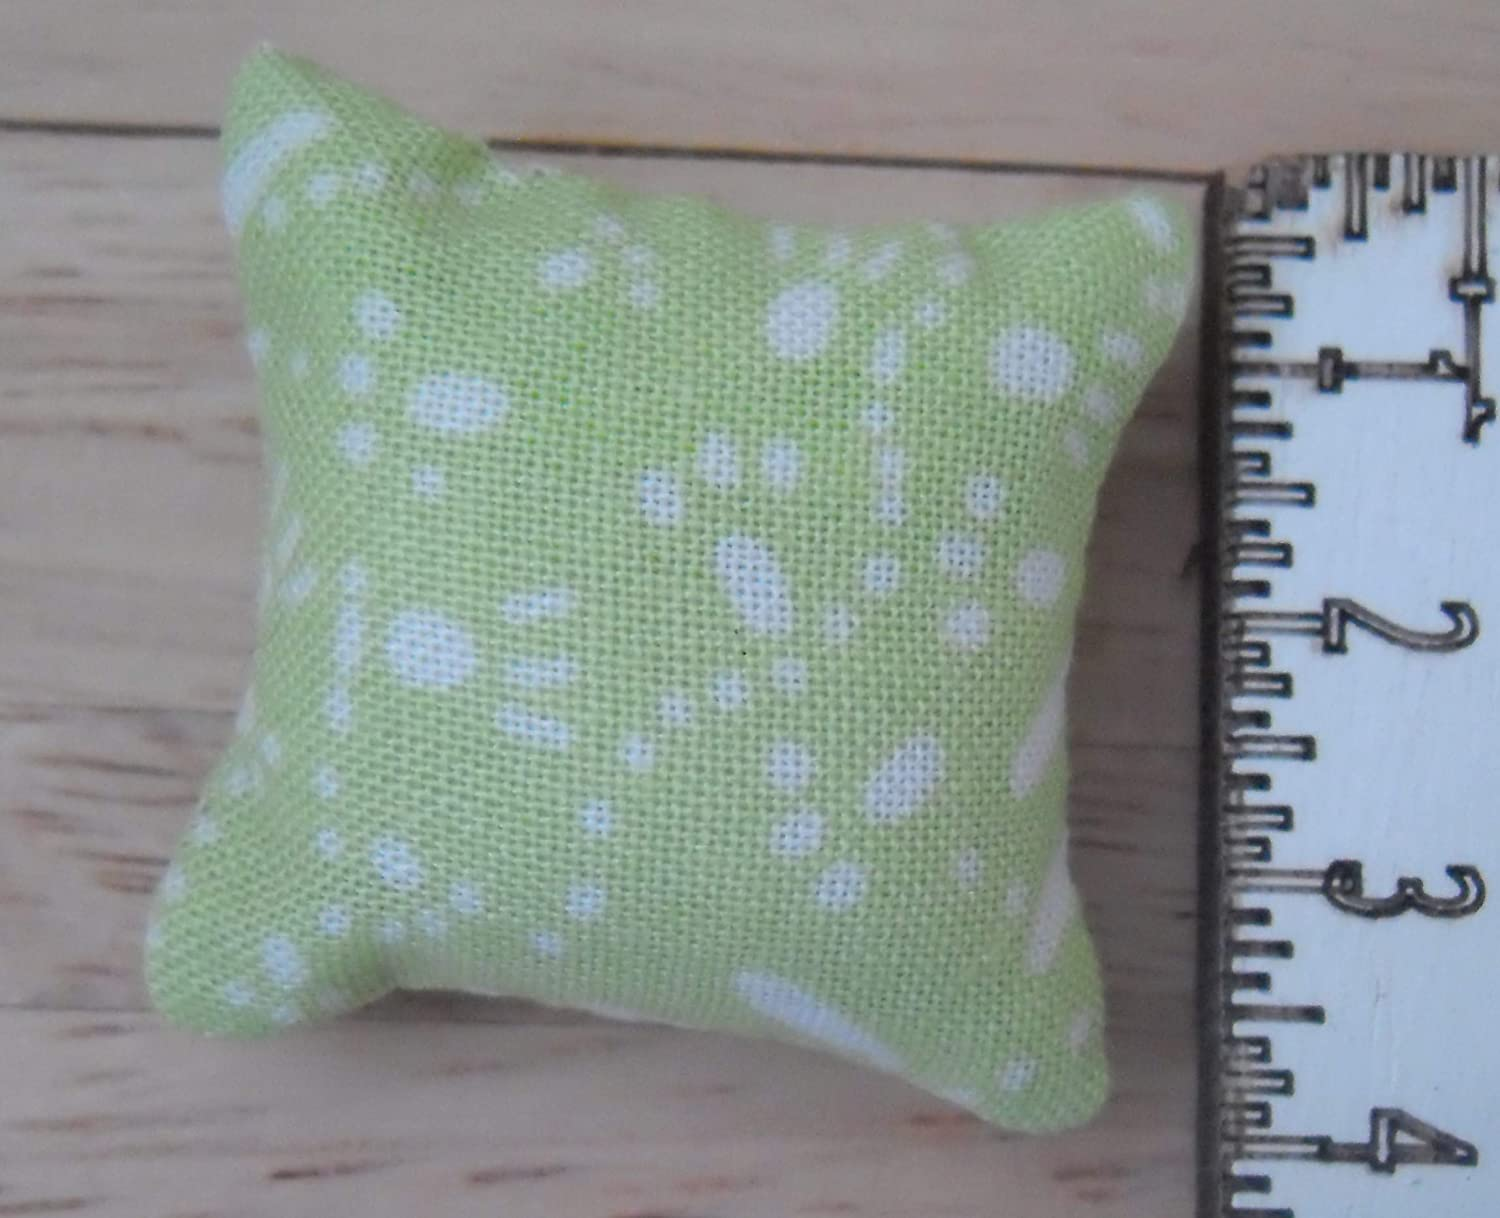 1//12th Scale Dolls House Printed Fabric Cushions Abstract Design in Green and White